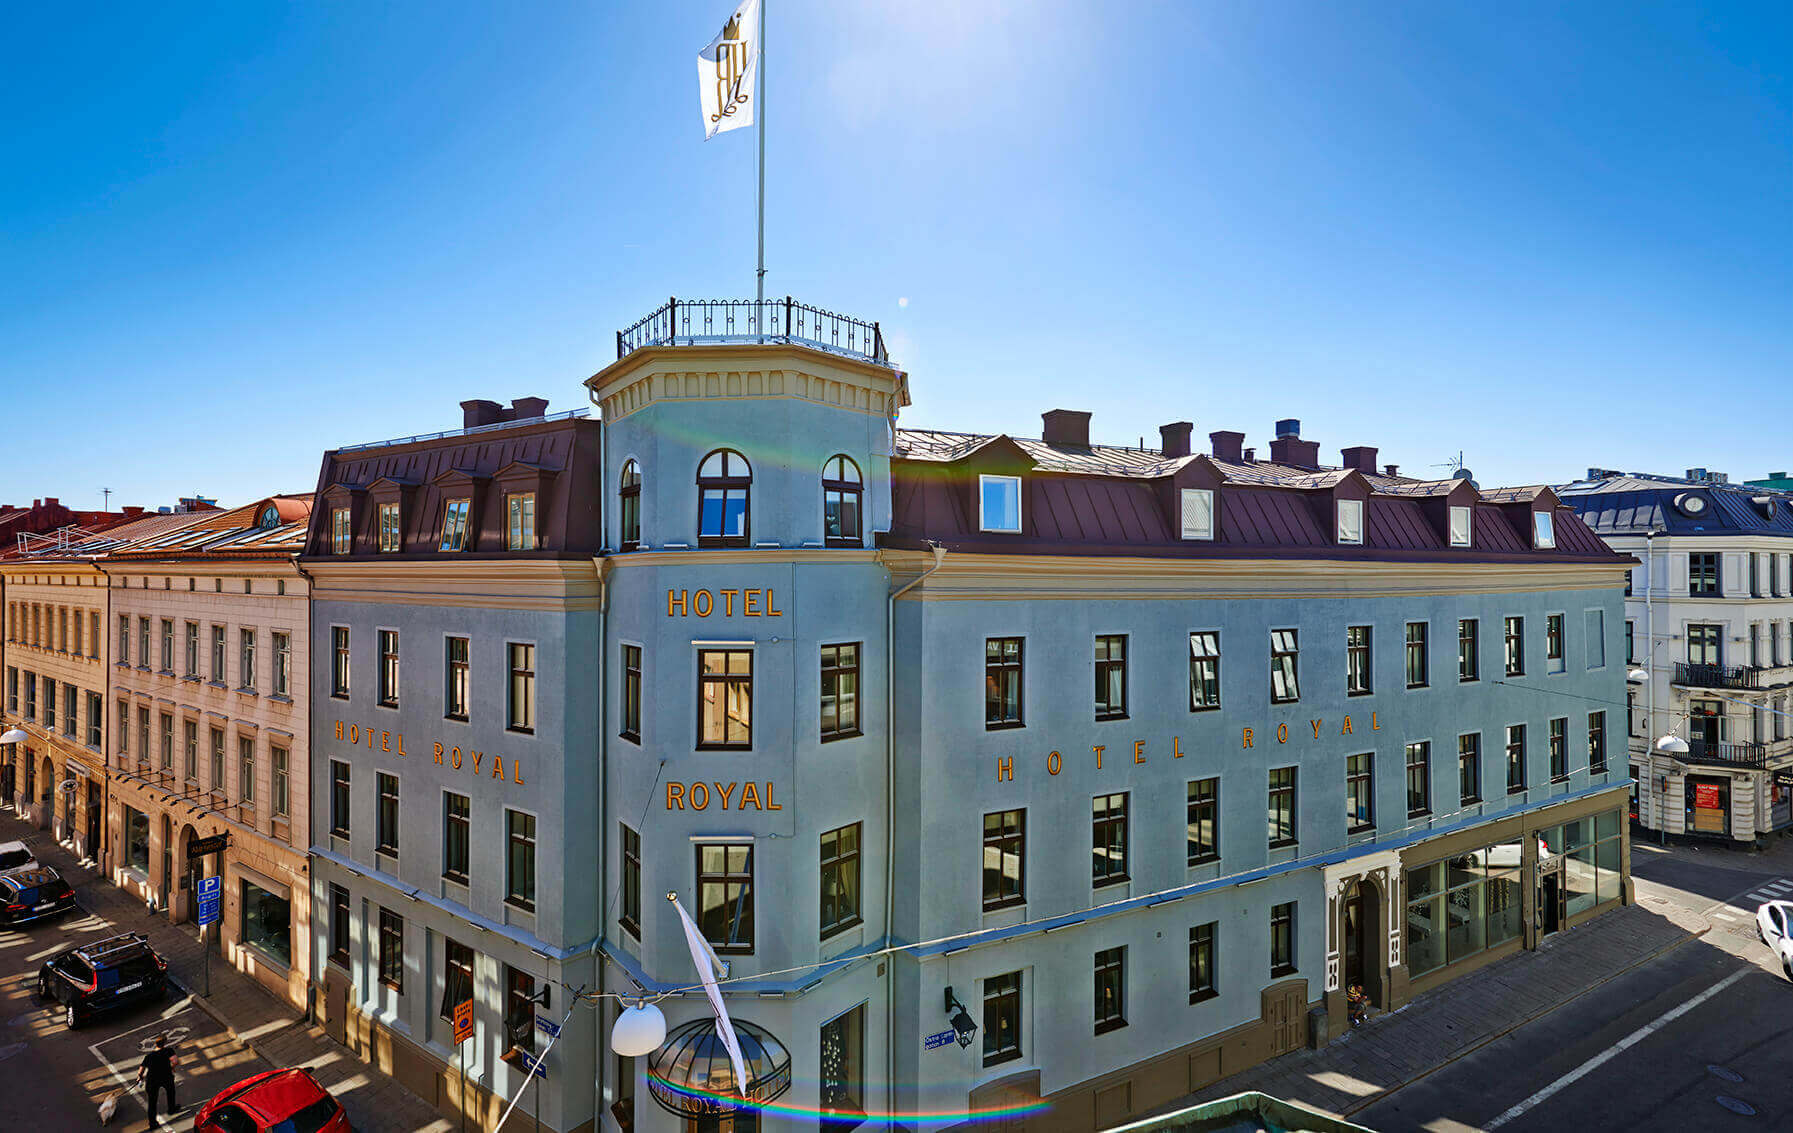 Hotel Royal Konferens